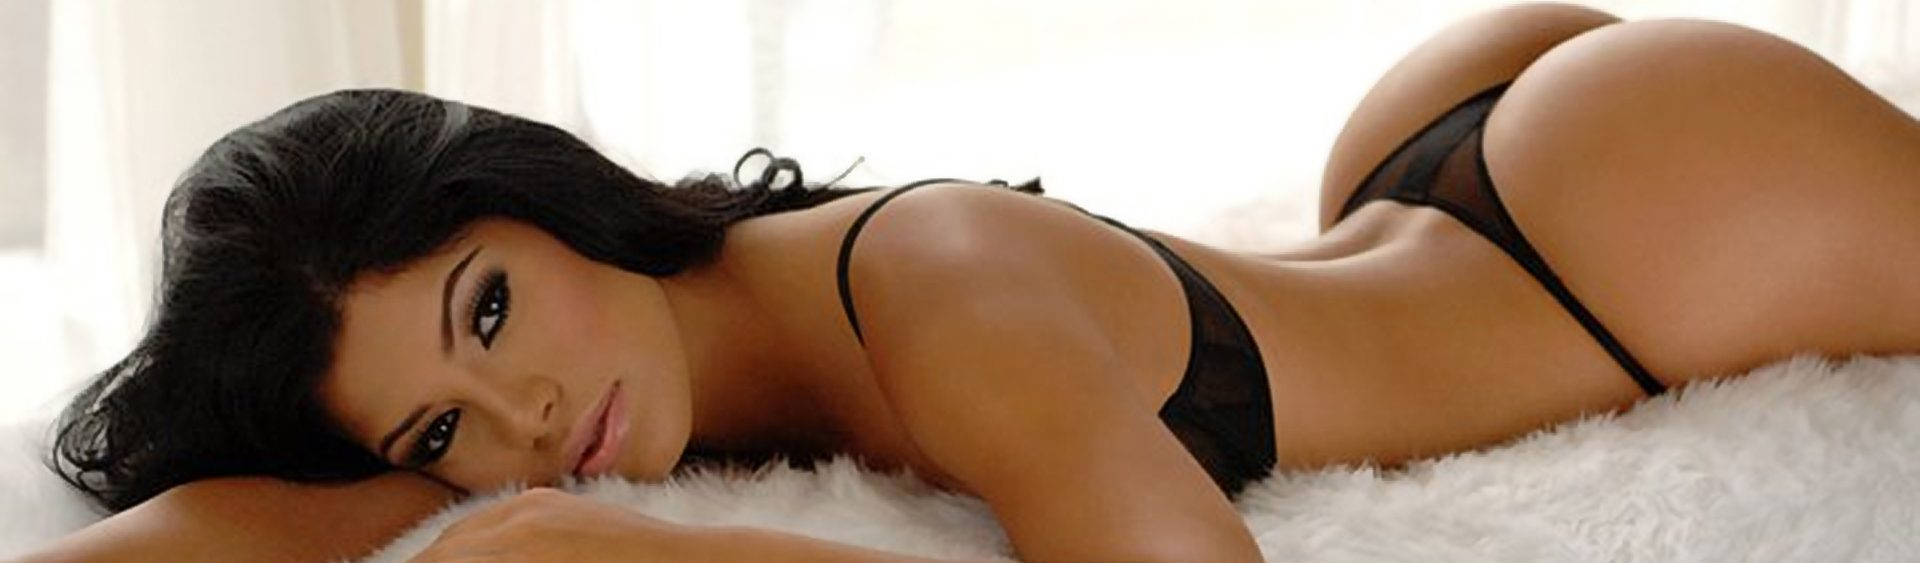 Mesmerized Escorts Las Vegas